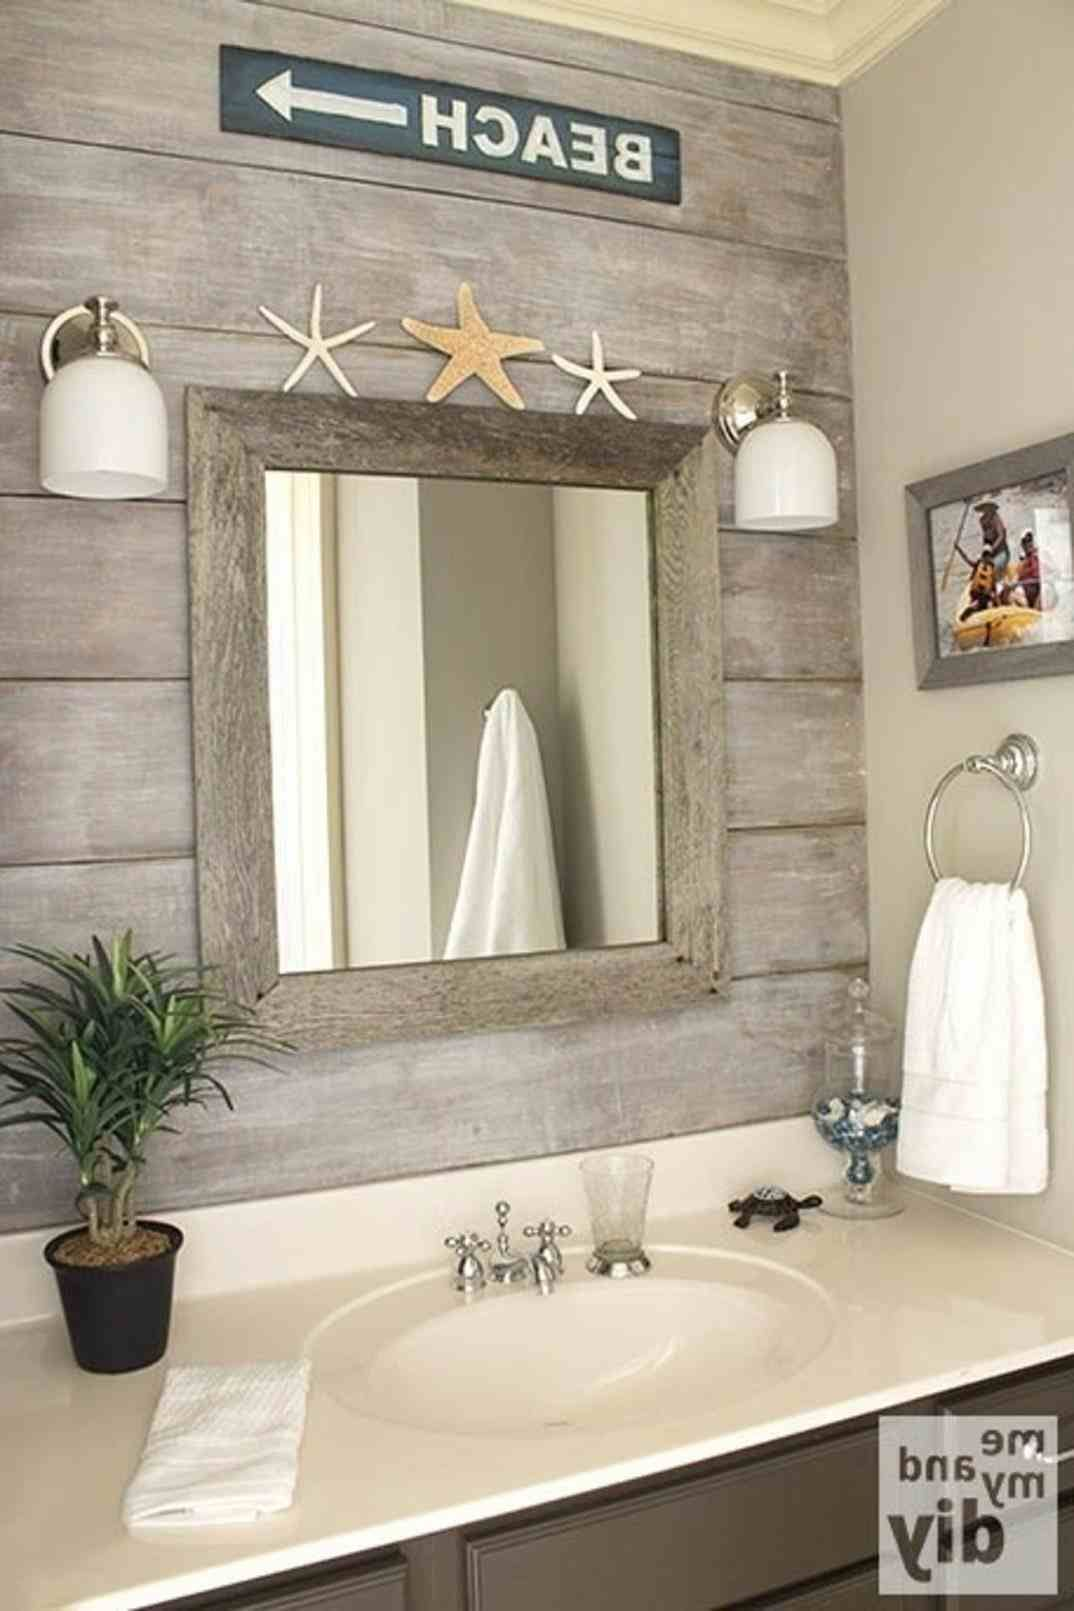 New post beach bathroom mirror visit bobayule trending decors